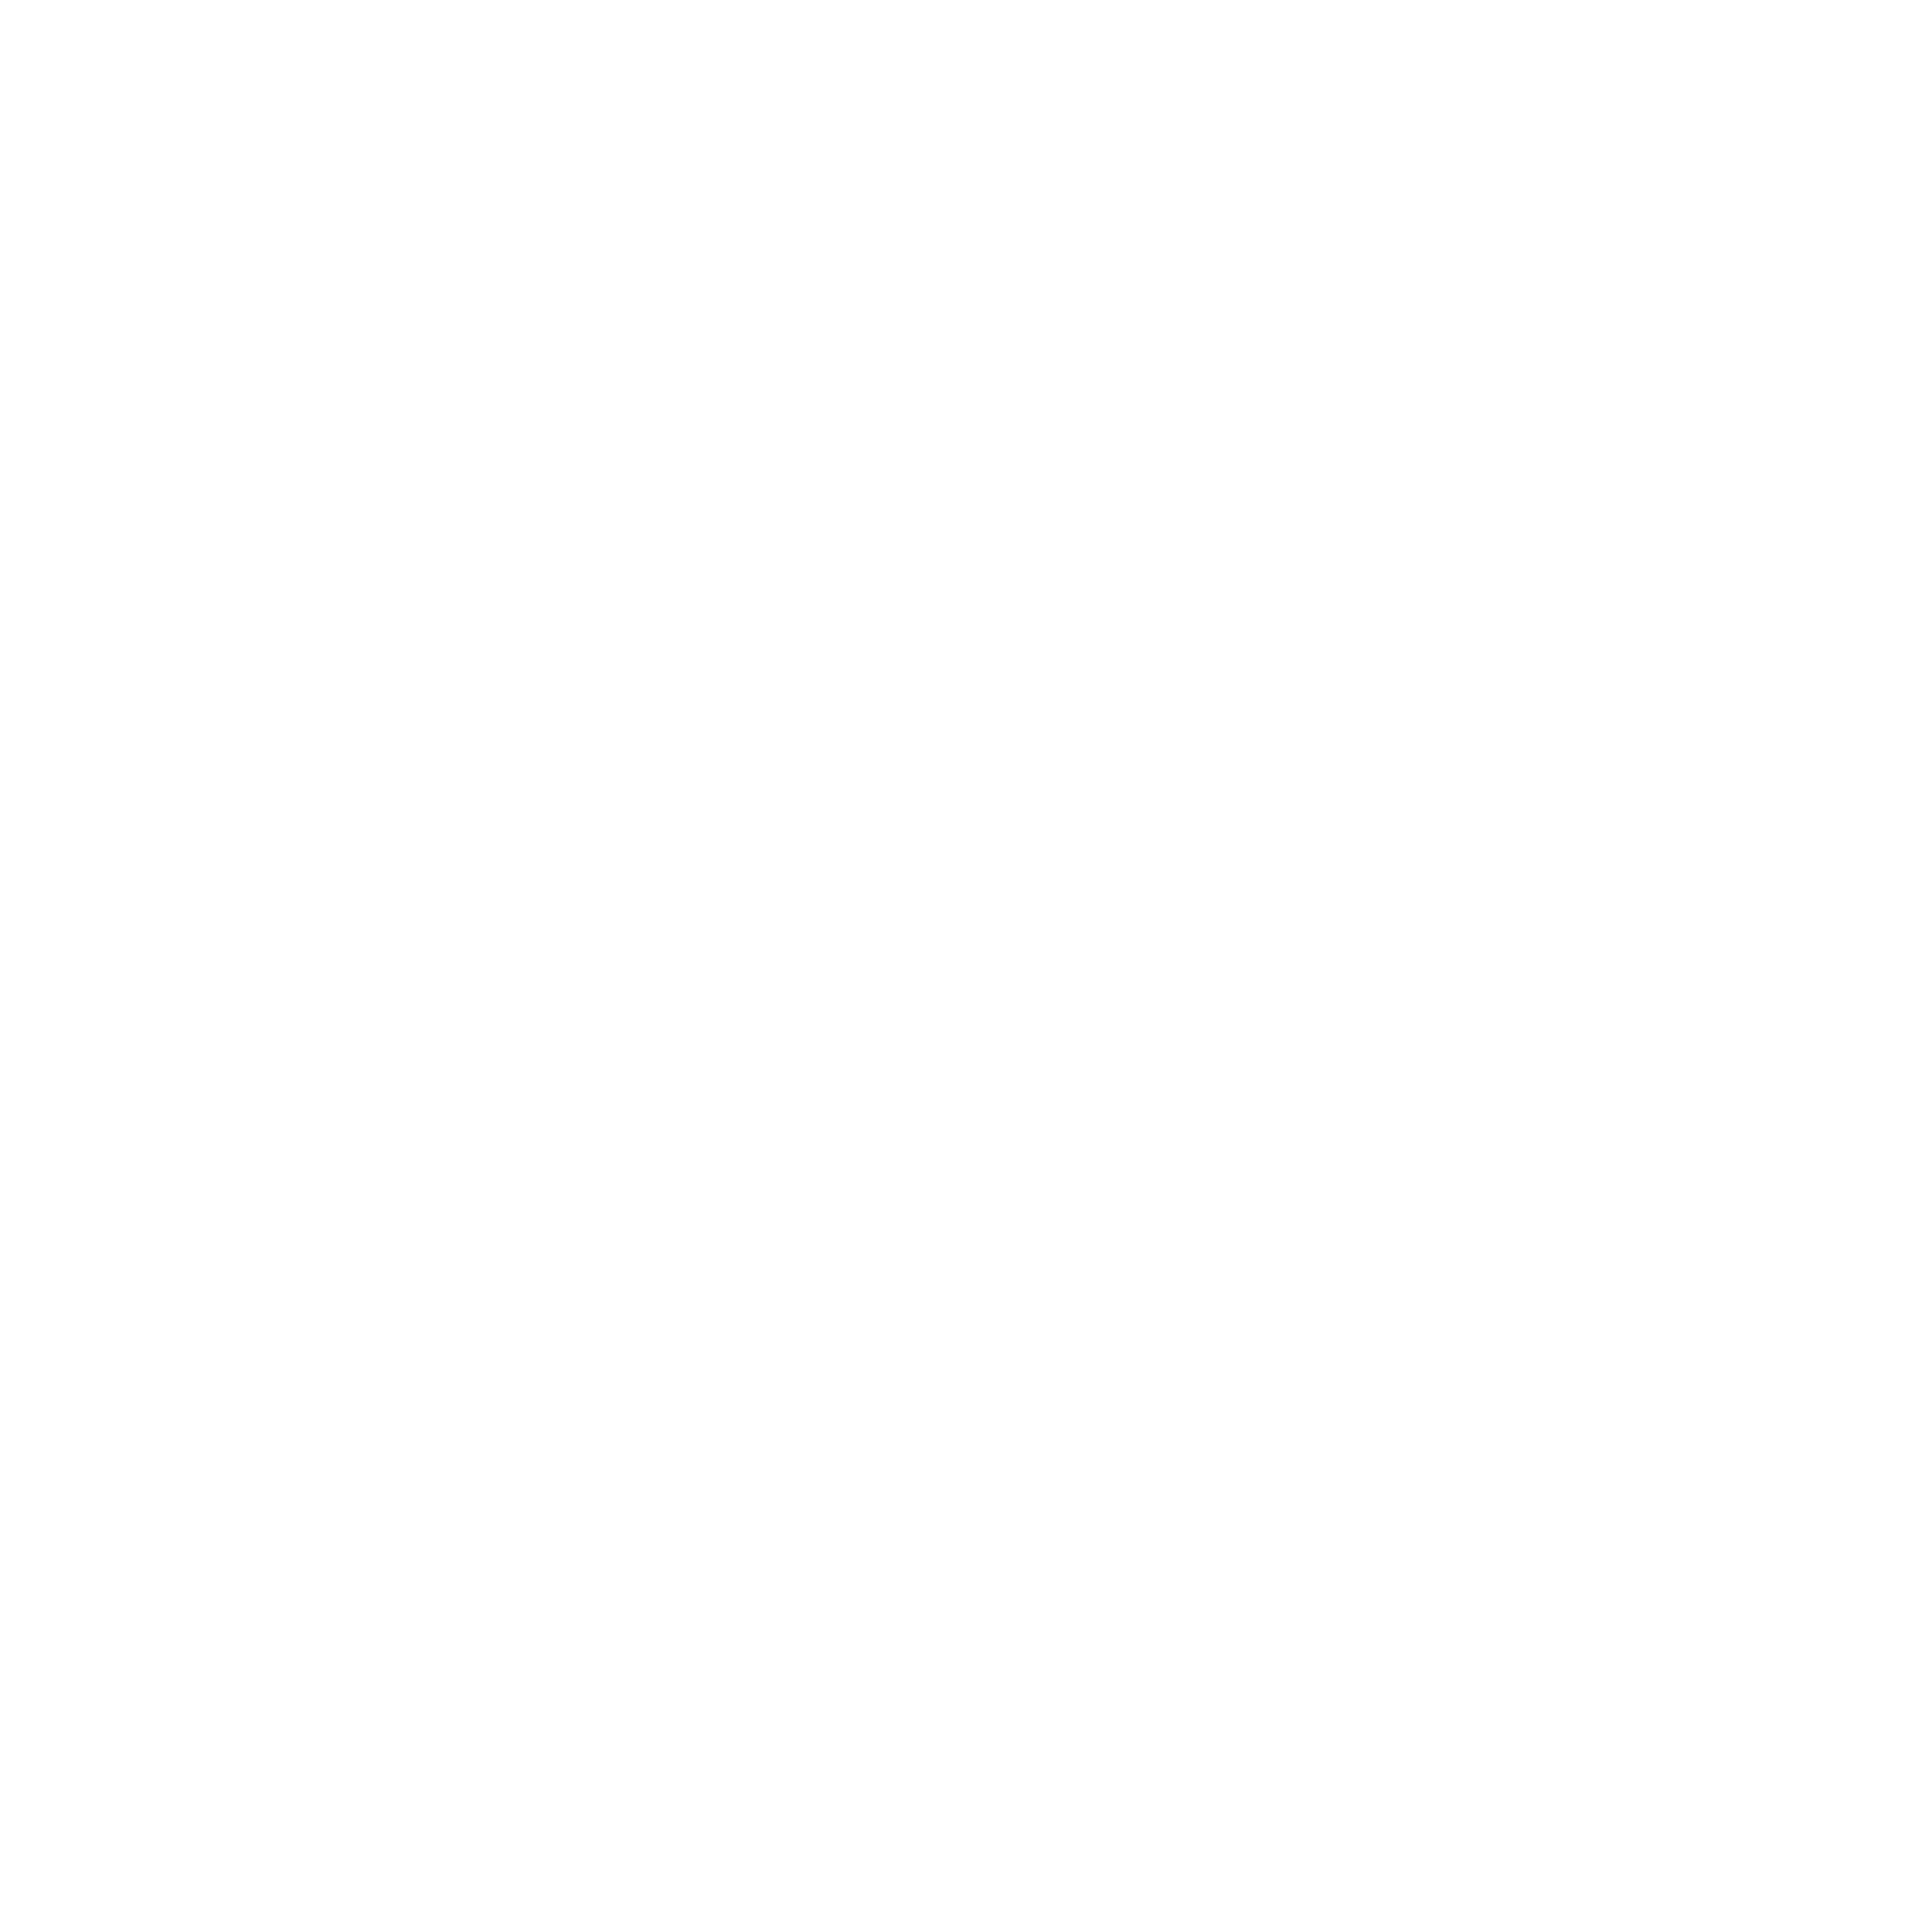 ACURA-1.png